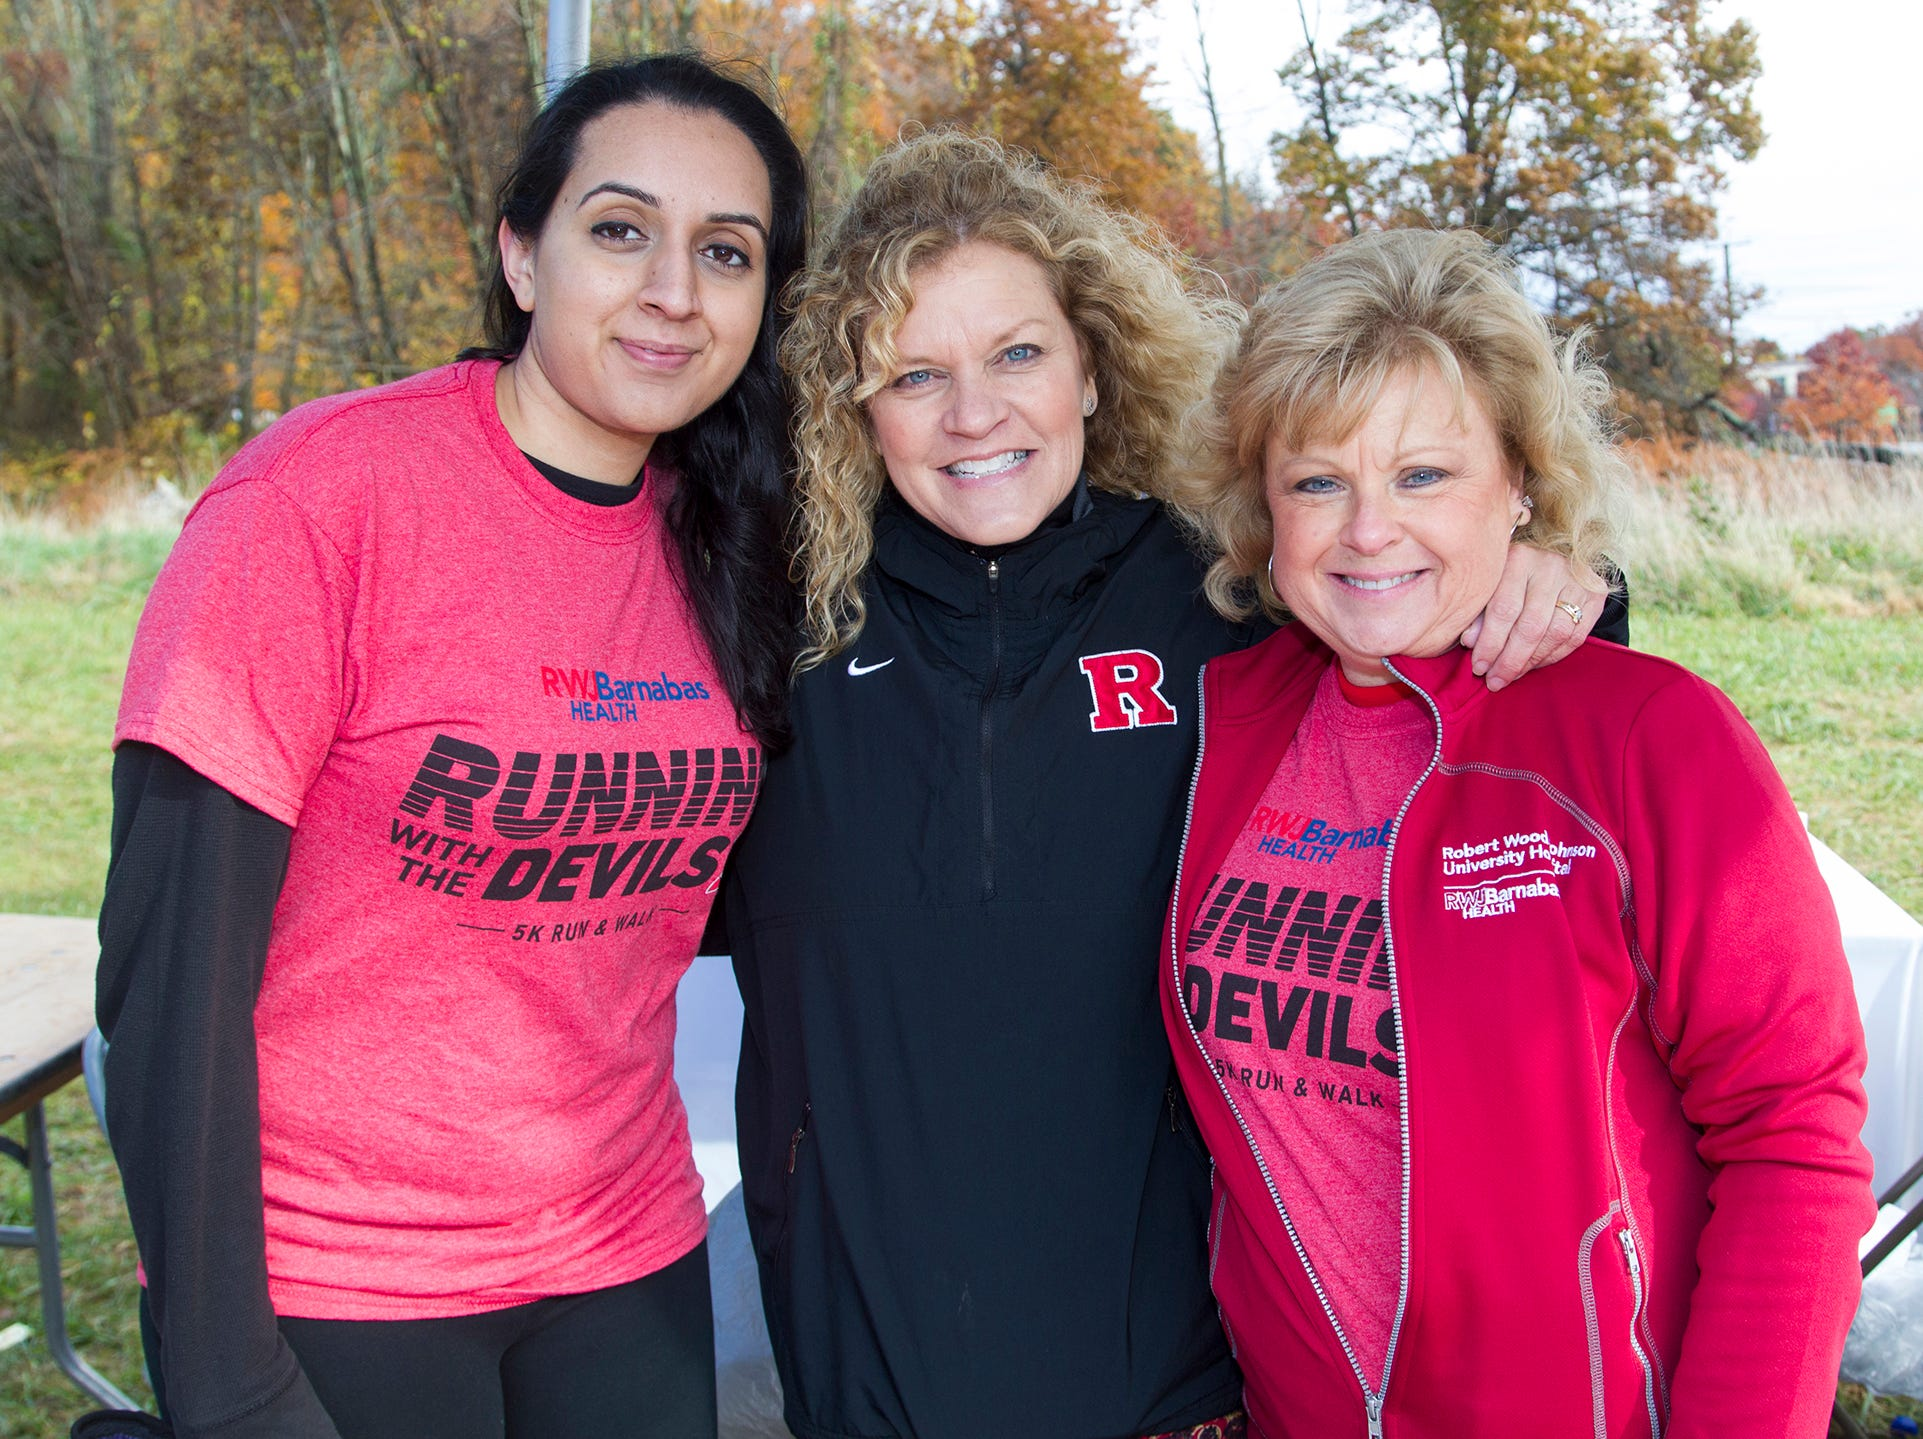 Mainu, Tammy, Connie. RWJBarnabas Health Running with the Devils 5K Run and Family Fun Walk at South Mountain Recreation in West Orange. 10/03/2018